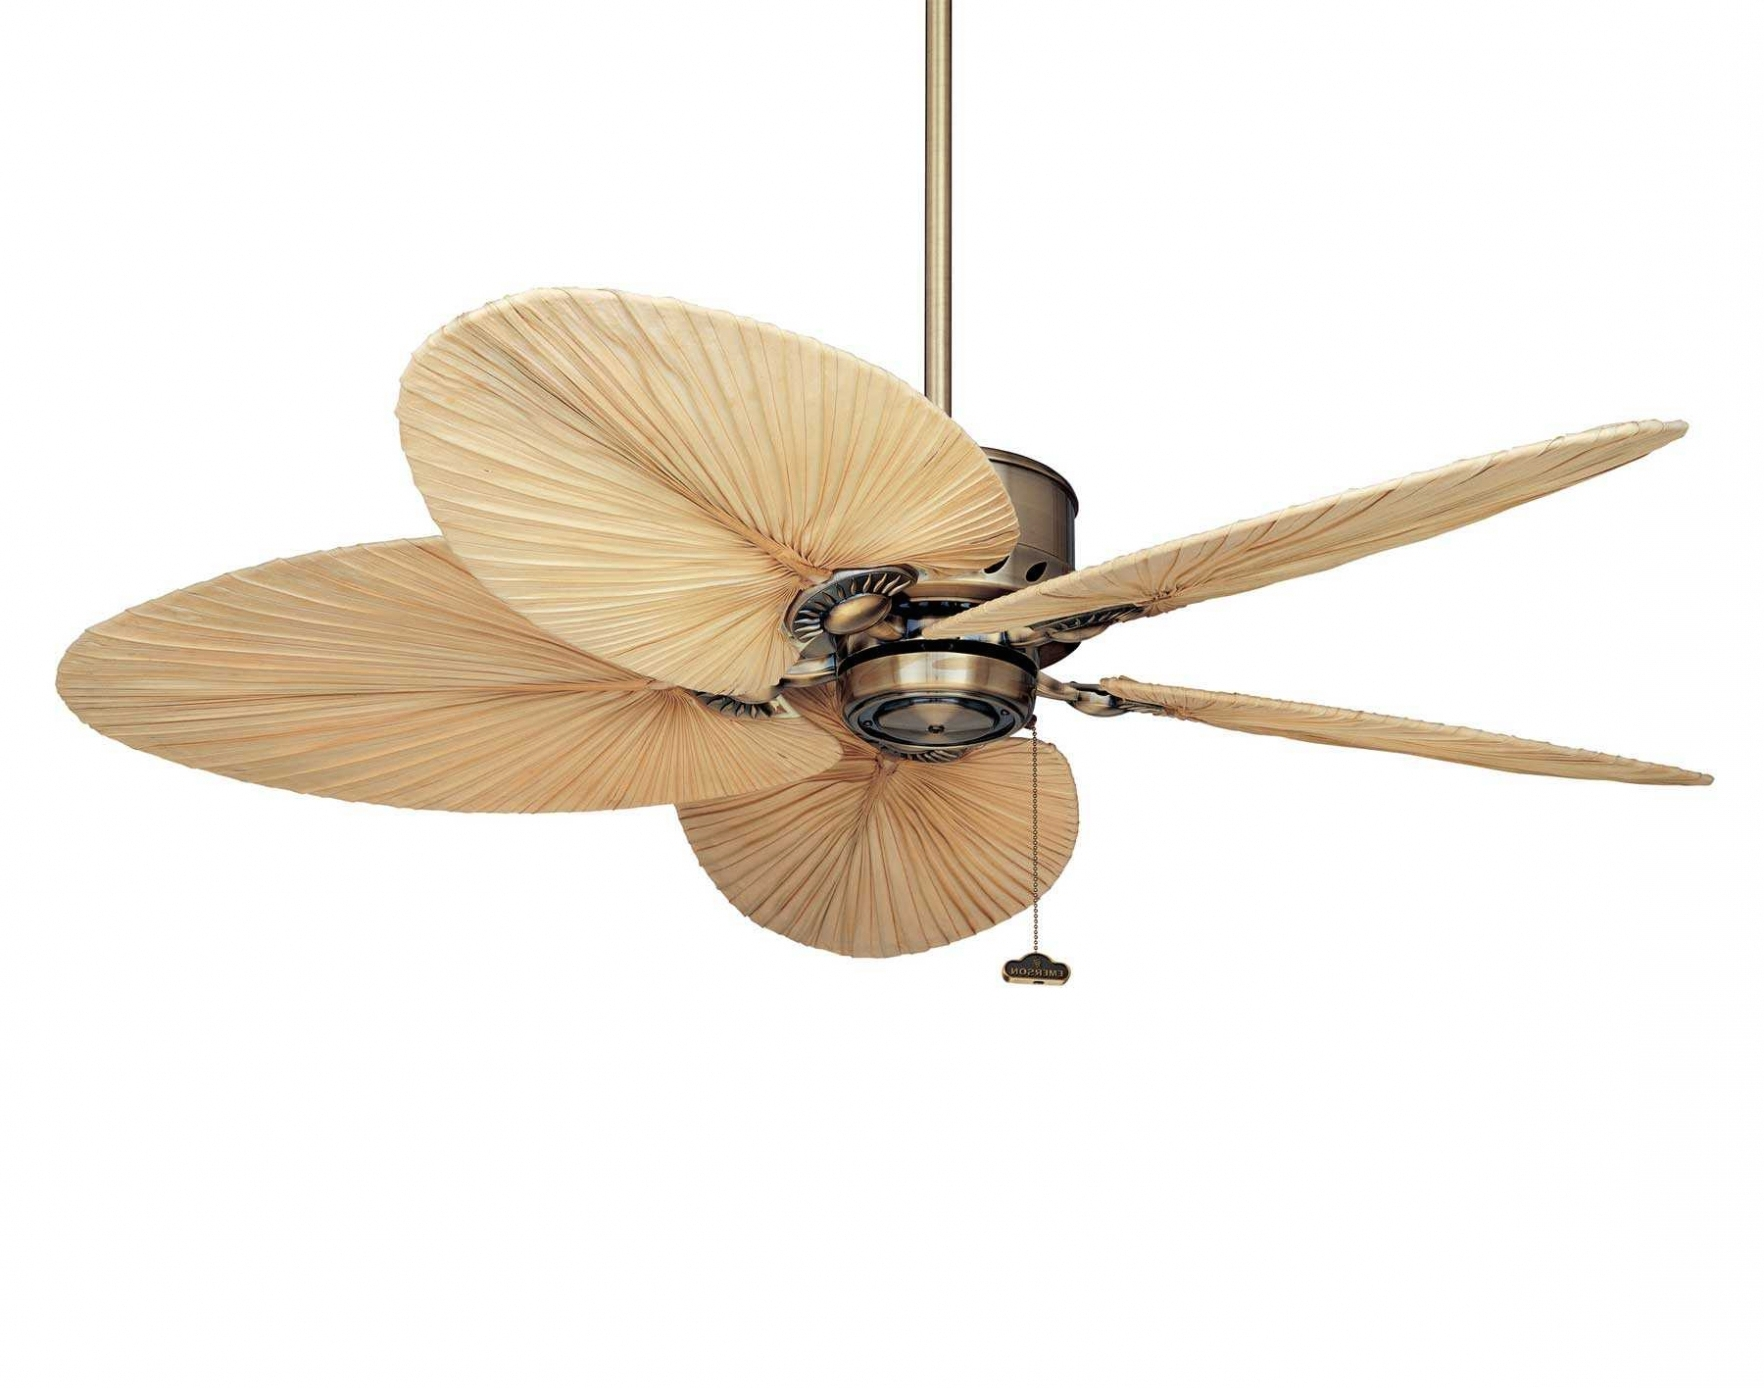 Fashionable Tips: Tropical Outdoor Ceiling Fans With Lights White Fan 2018 And With Tropical Outdoor Ceiling Fans (View 4 of 20)